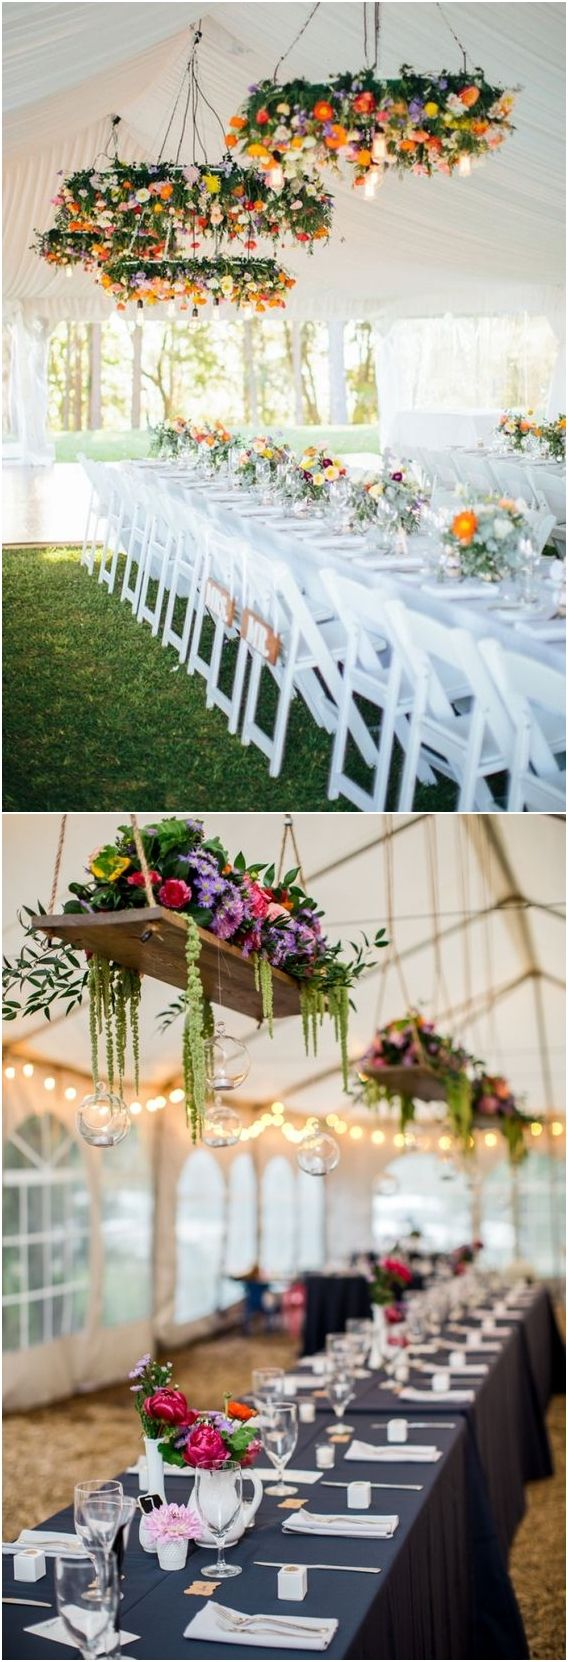 Wedding decorations tent october 2018  best  Trends and Inspiration images on Pinterest  Wedding